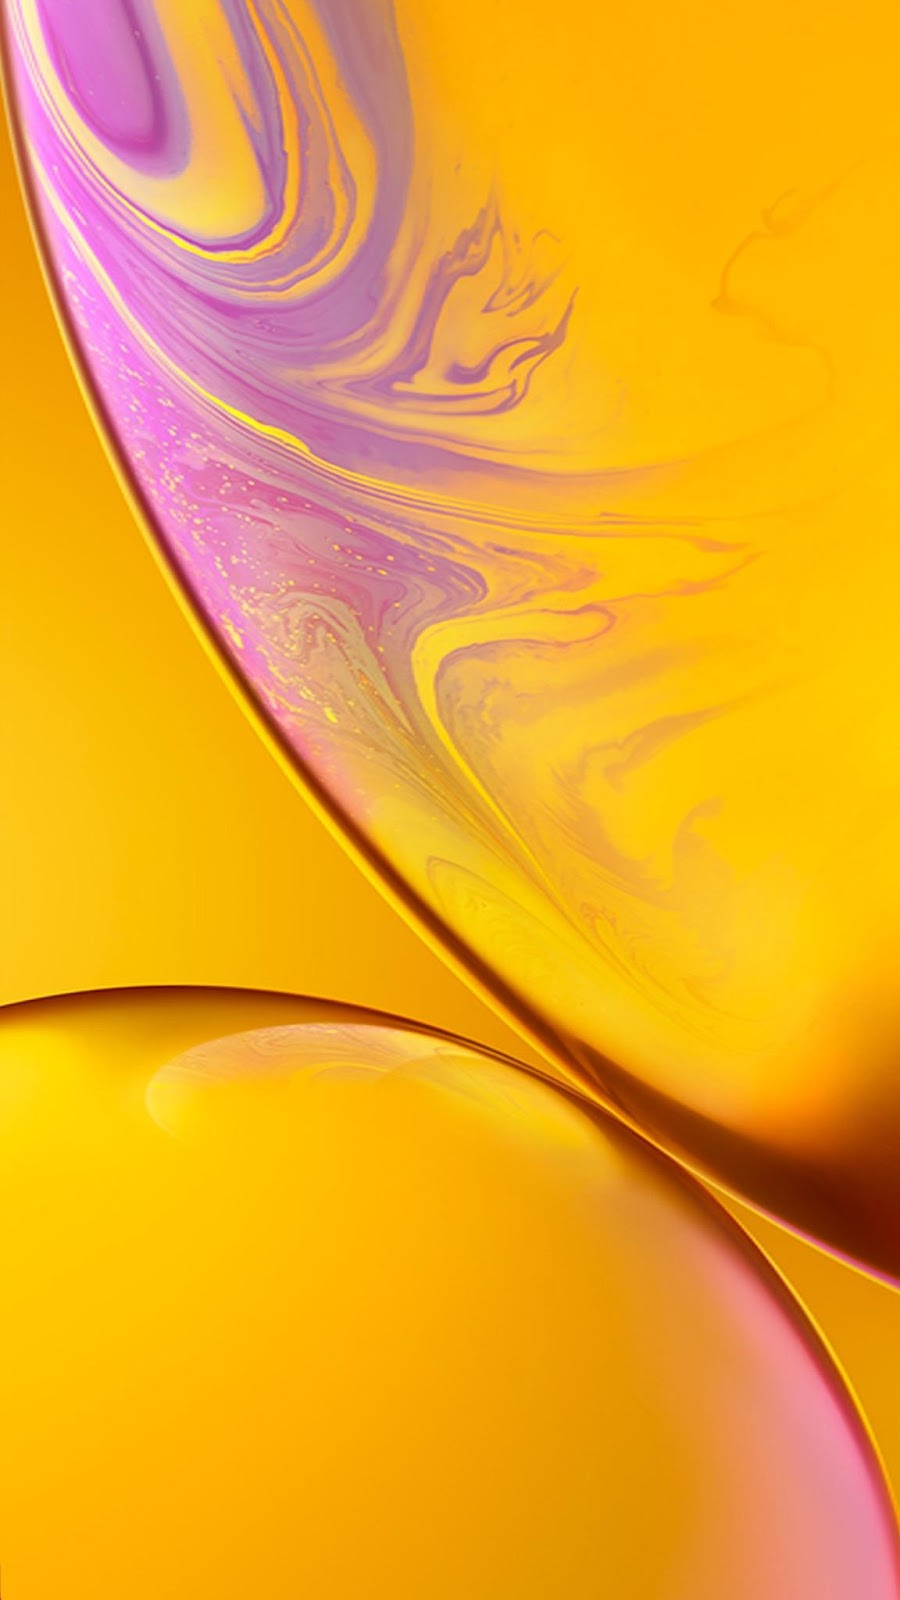 Iphone Xr Wallpaper Yellow Mactrast